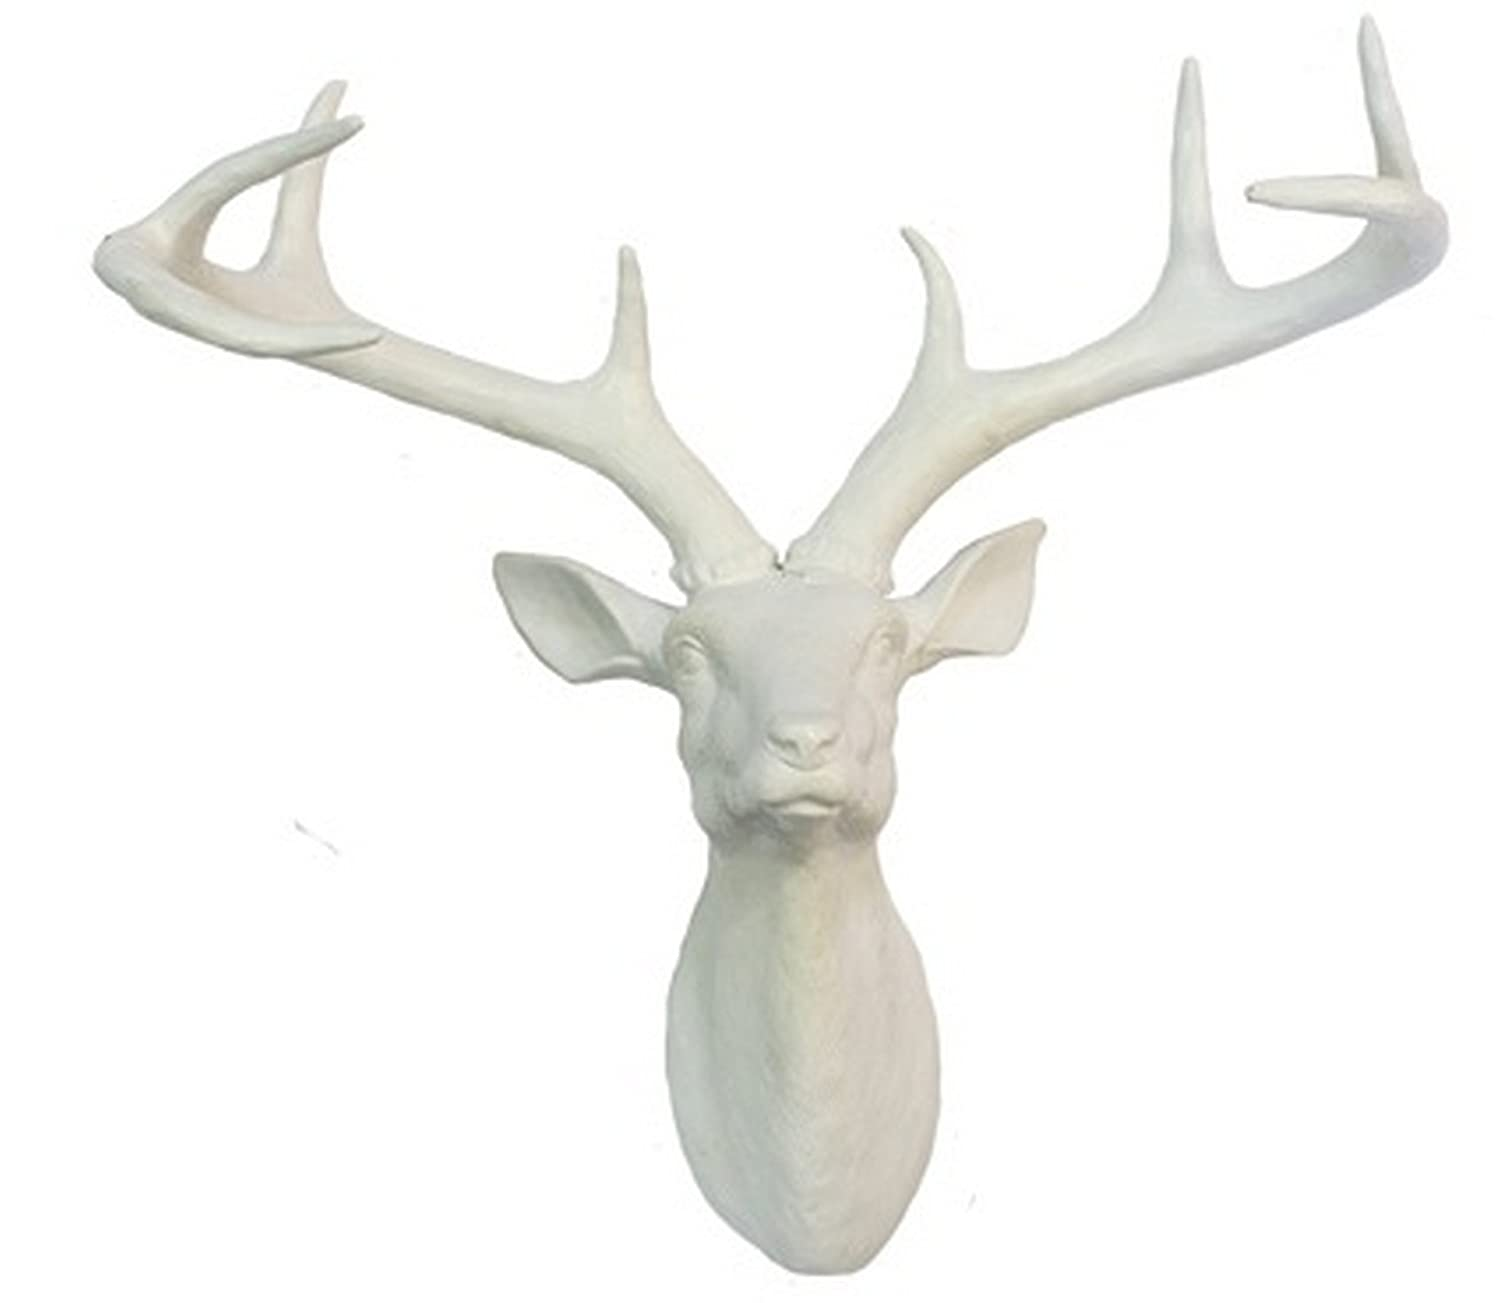 Arthouse Stag Head Décor, Resin, Black, 43 x 35 x 23 cm 8152